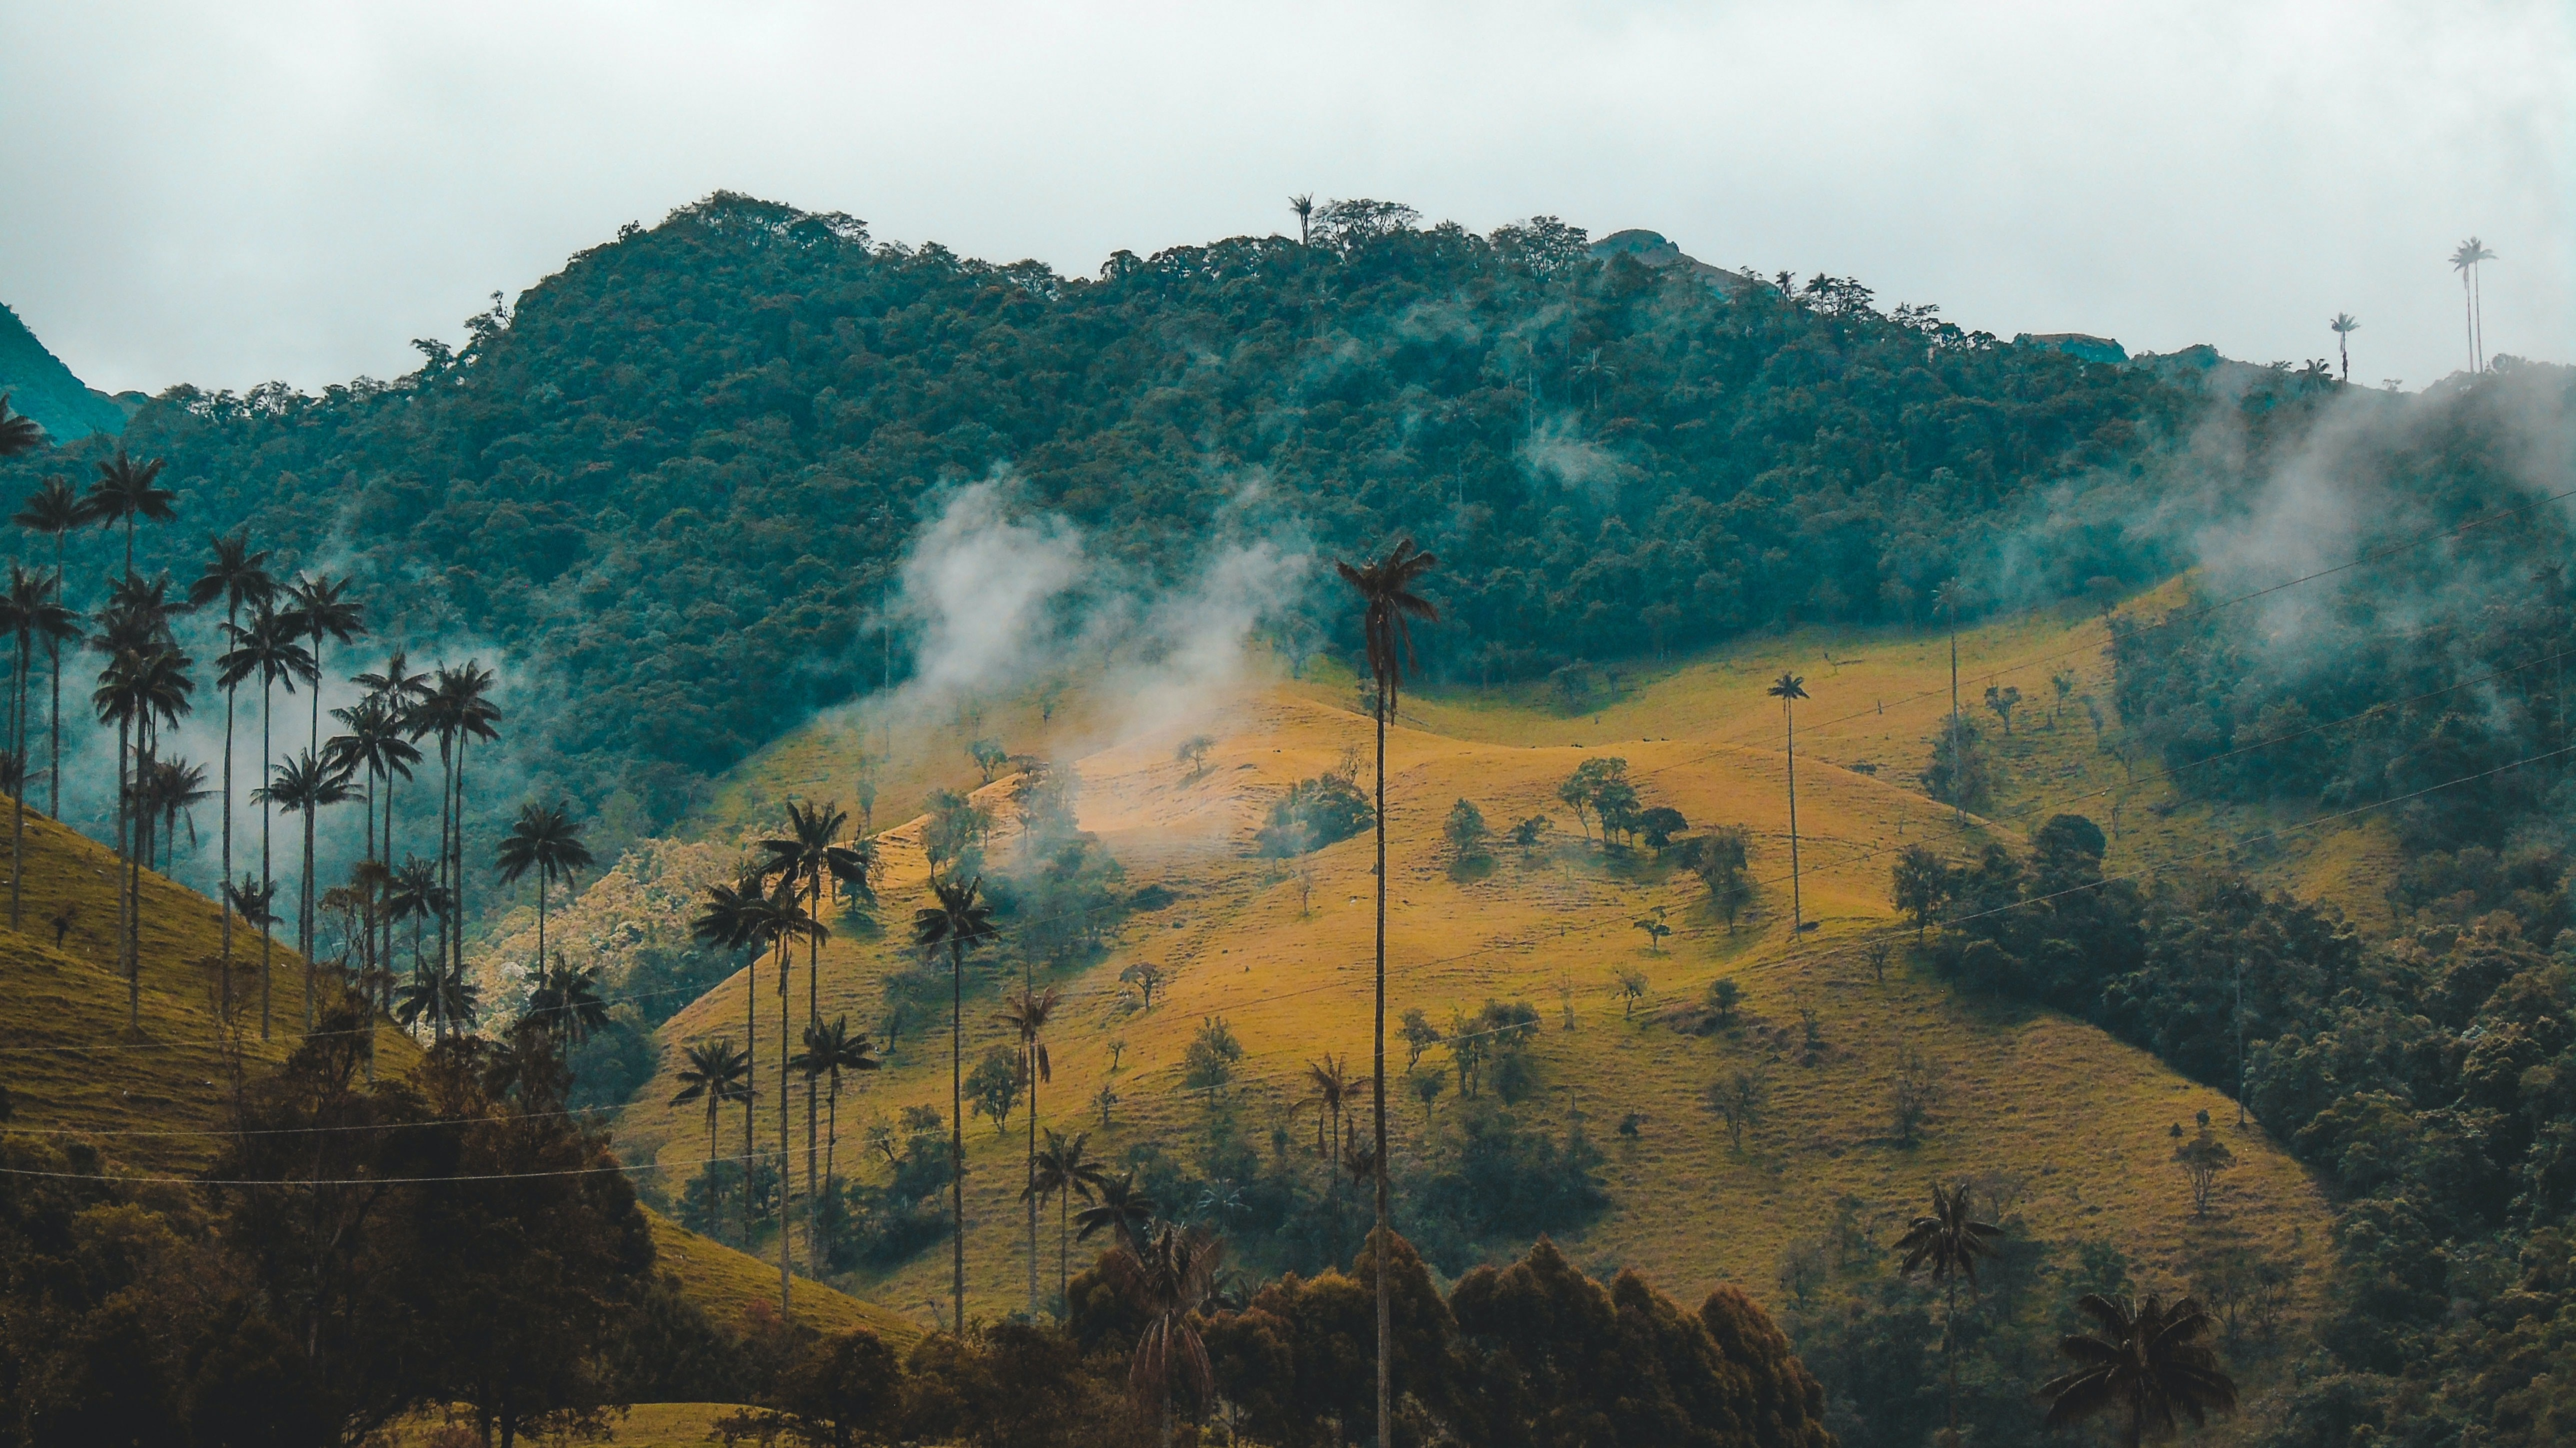 As indigenous people protest in Colombia, we must rally with them